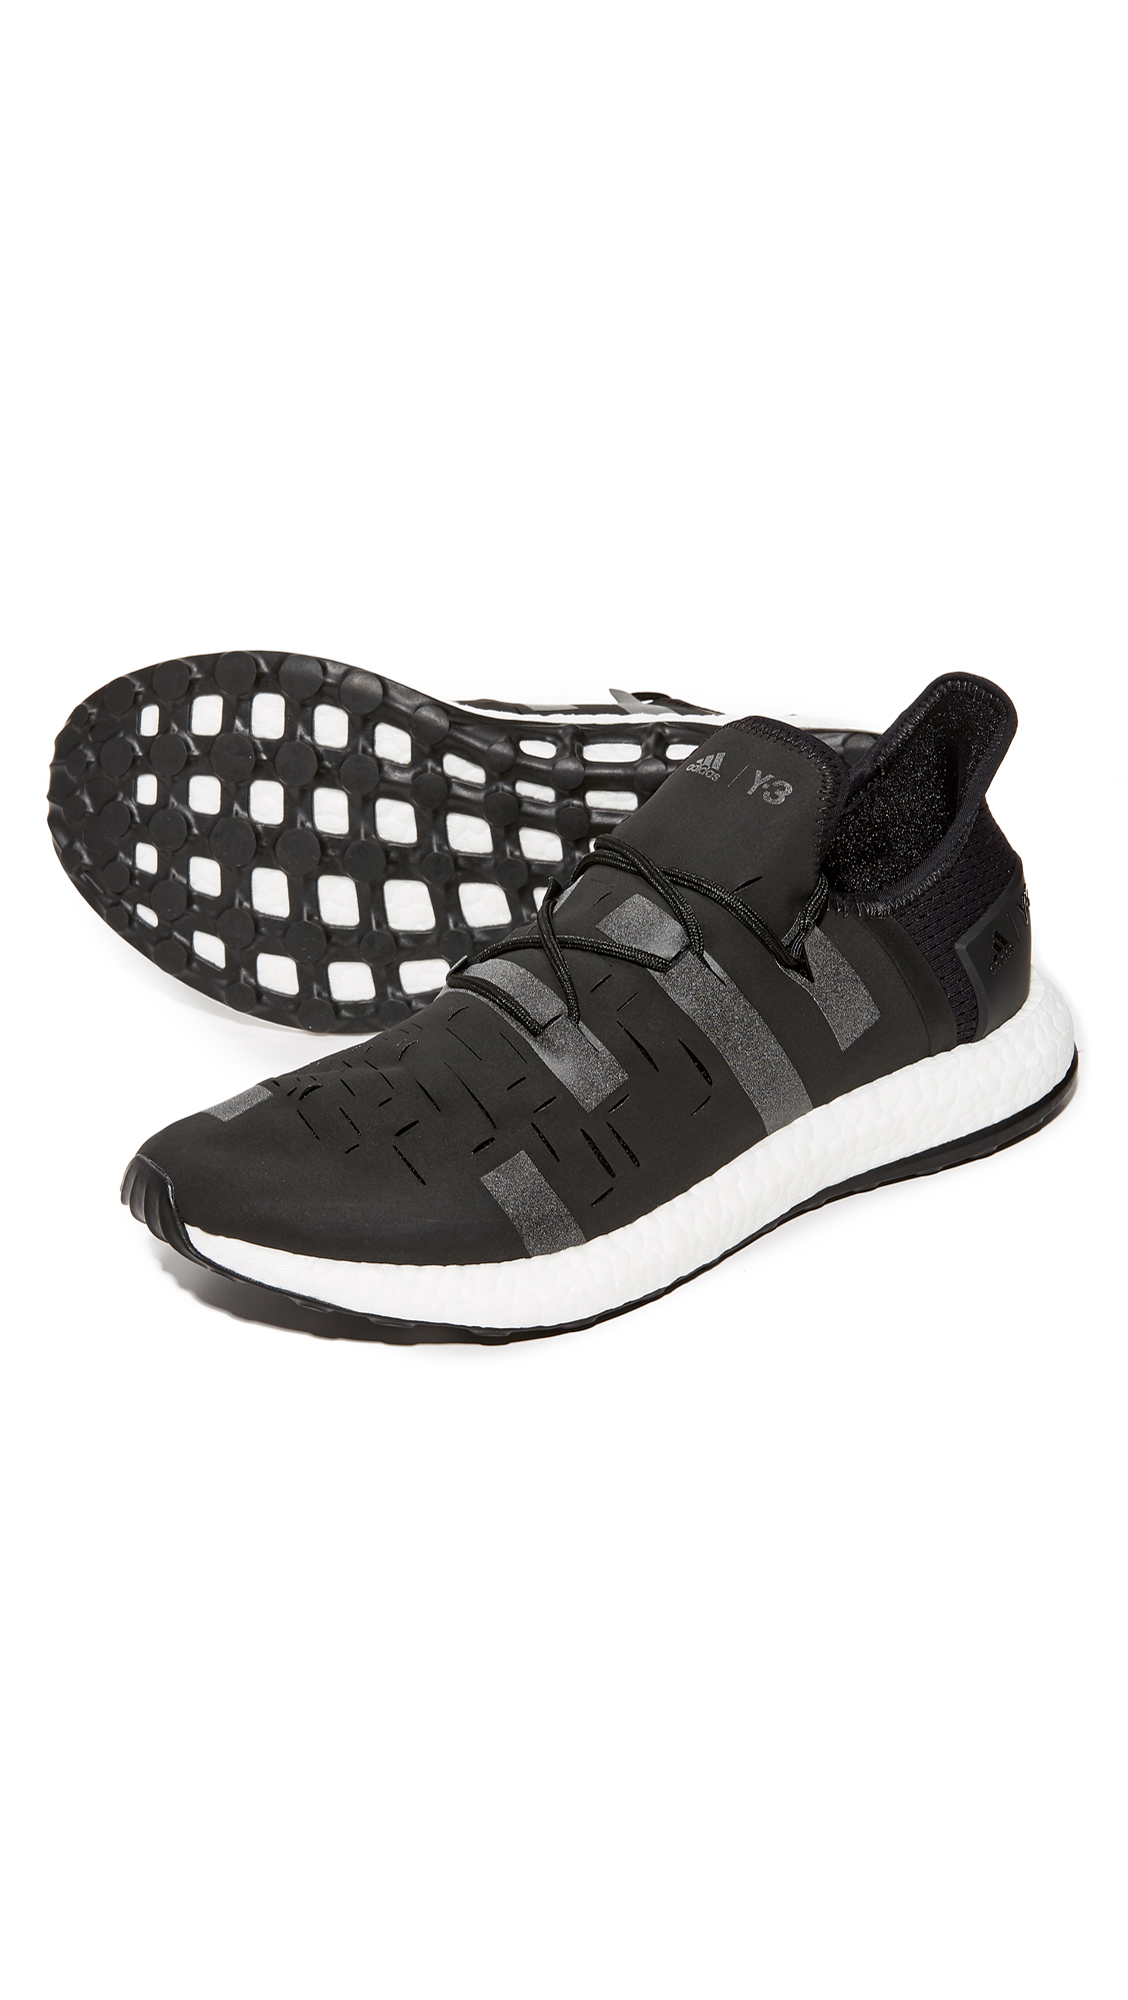 Y-3 Black Approach Low Sneakers